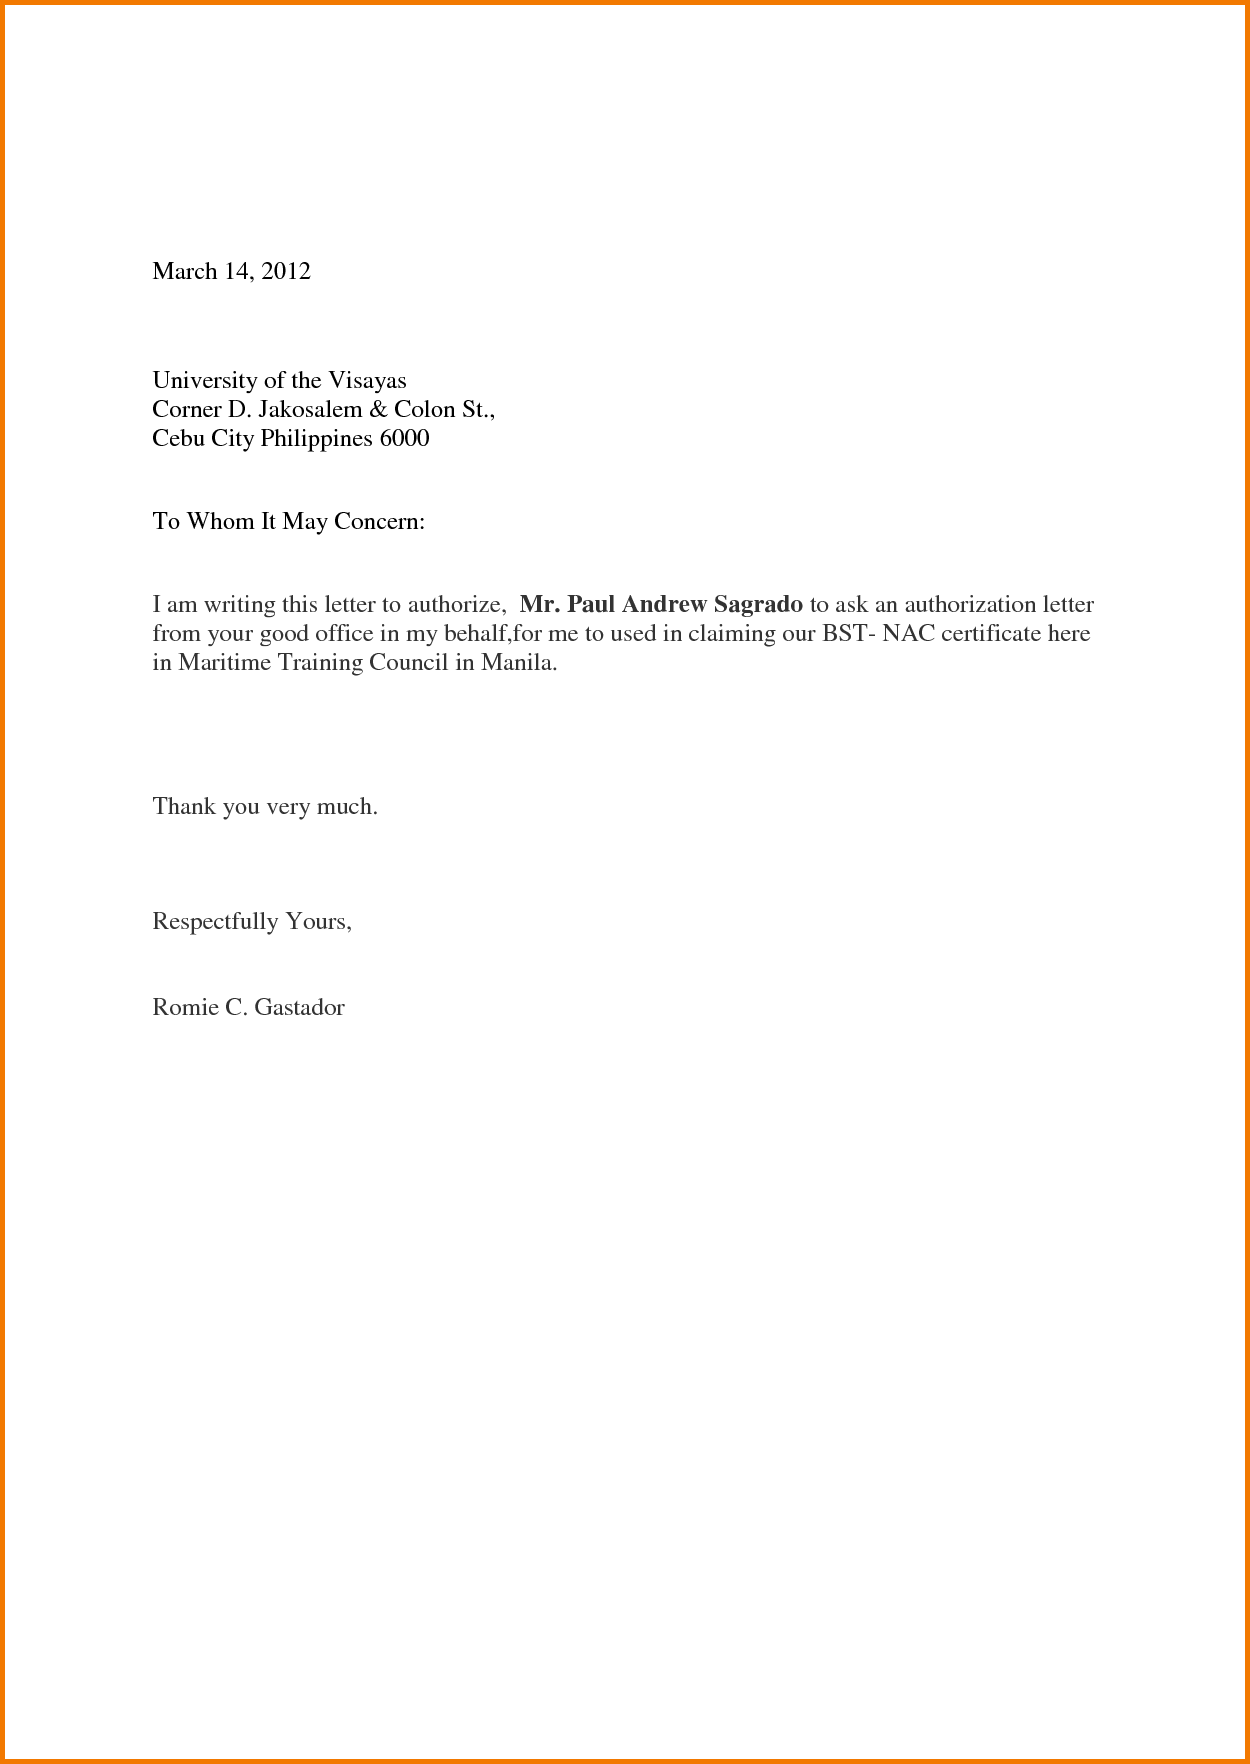 Simple Authorization Letter Sample to Act on Behalf